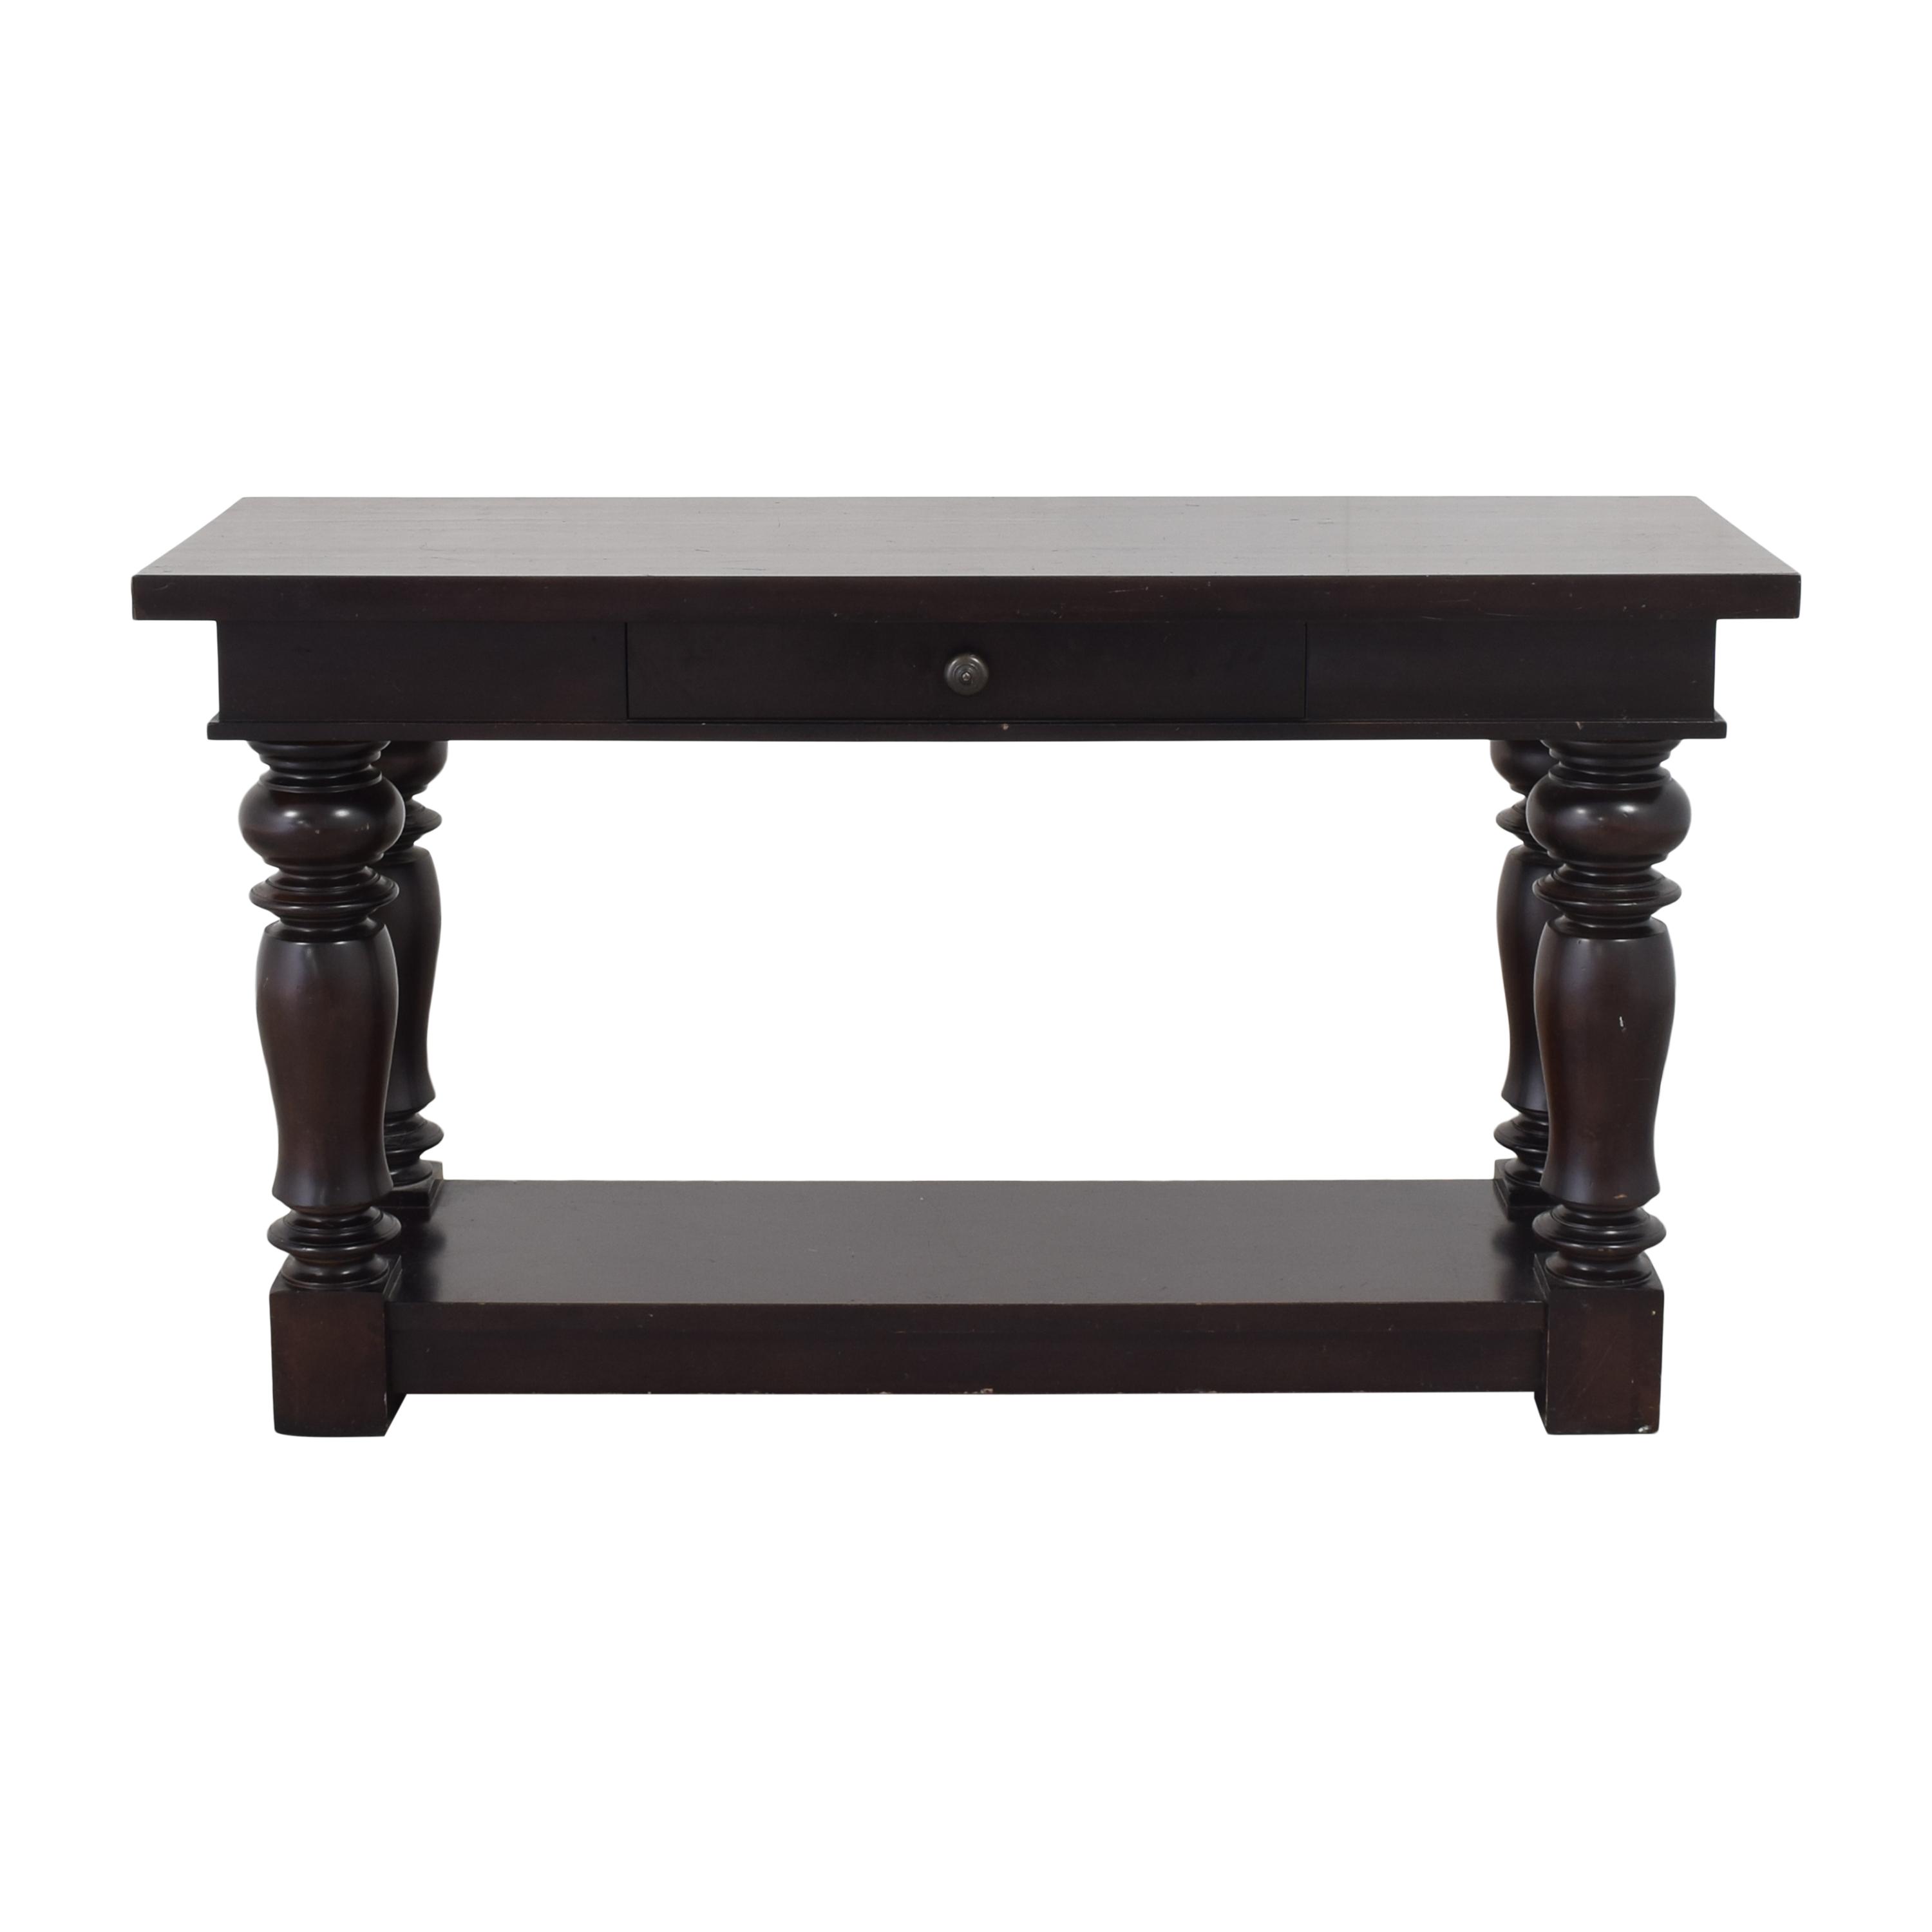 Restoration Hardware Restoration Hardware Console Table price